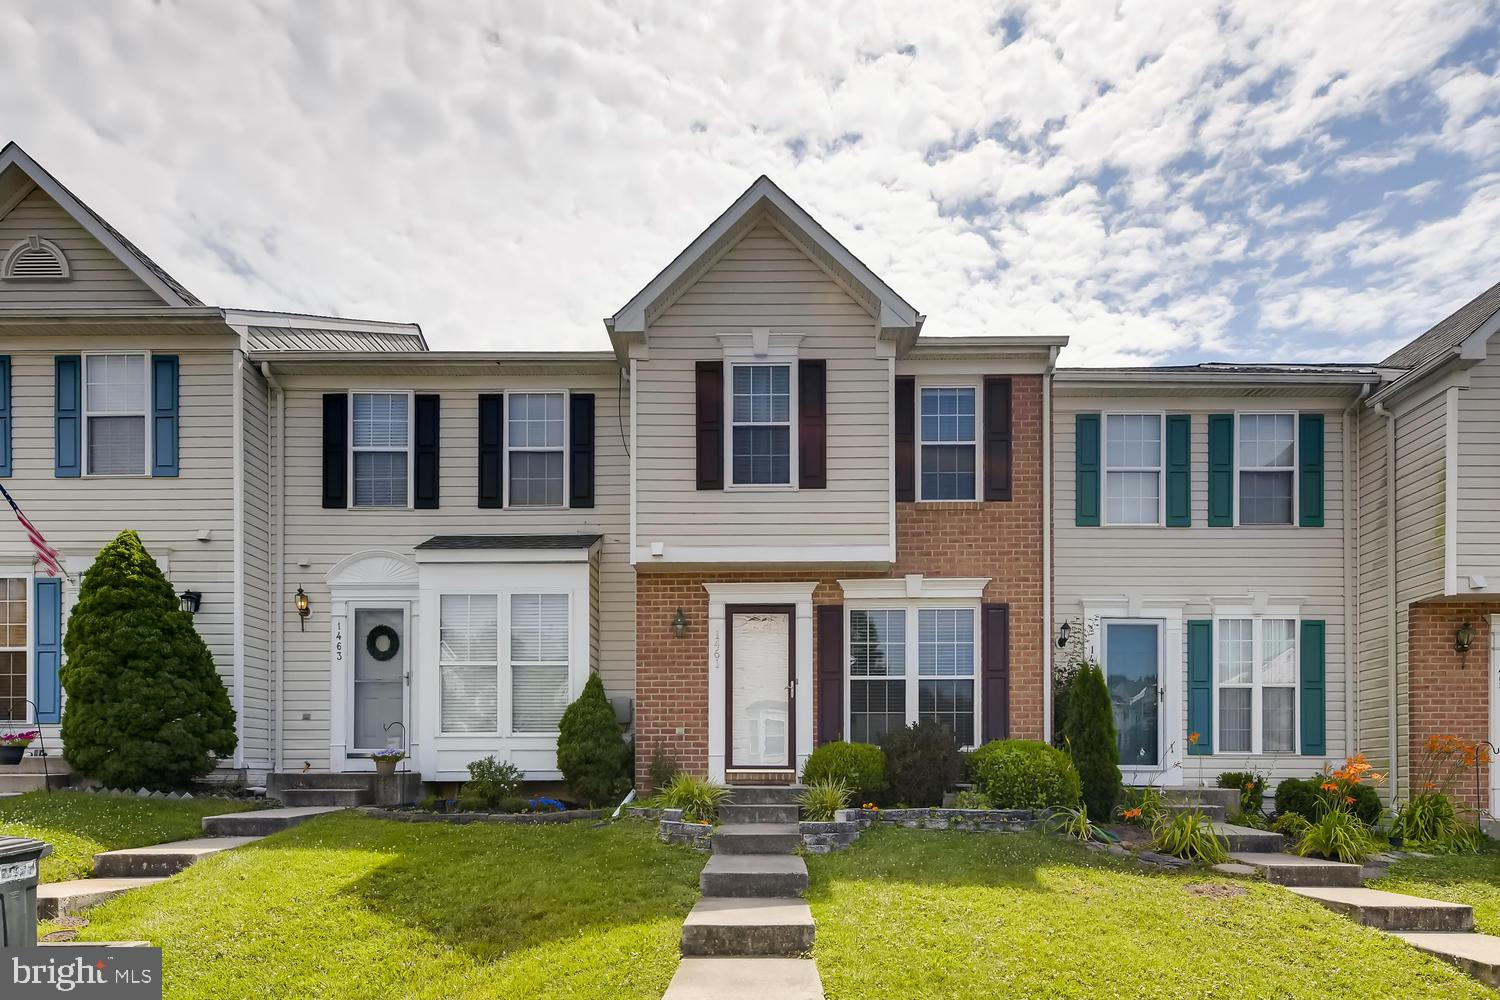 1461 GOLDEN ROD COURT, BELCAMP, MD 21017